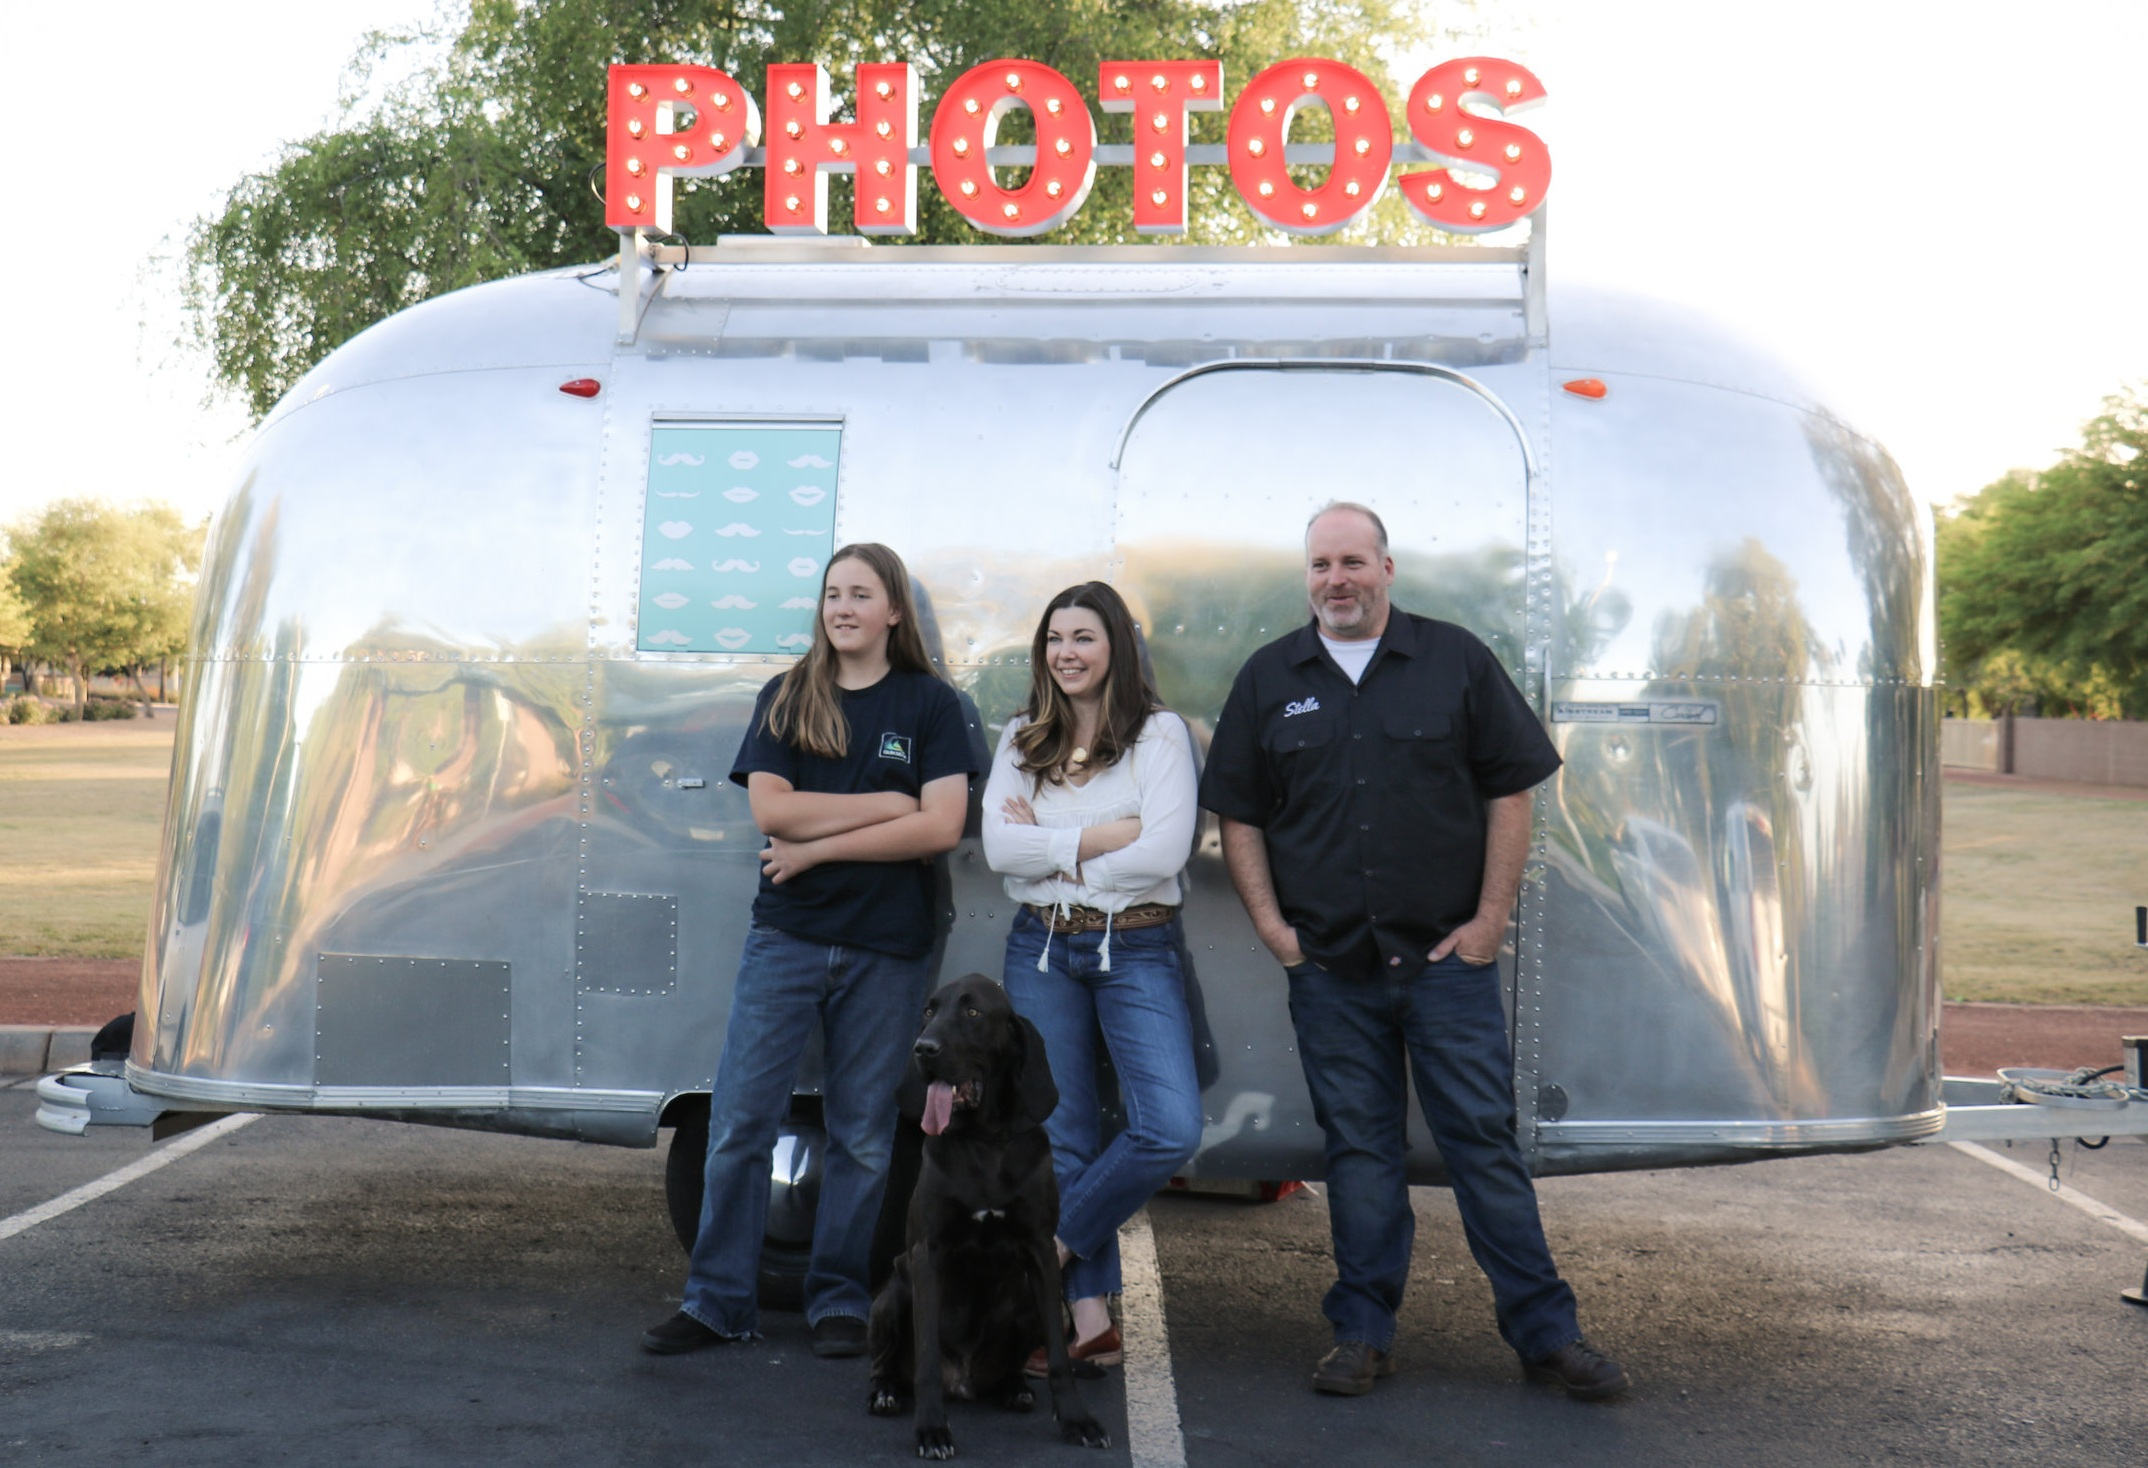 MEET THE MAKERS - Phillip and Brandi Walsh, their son Pearce and bloodhound Roscoe